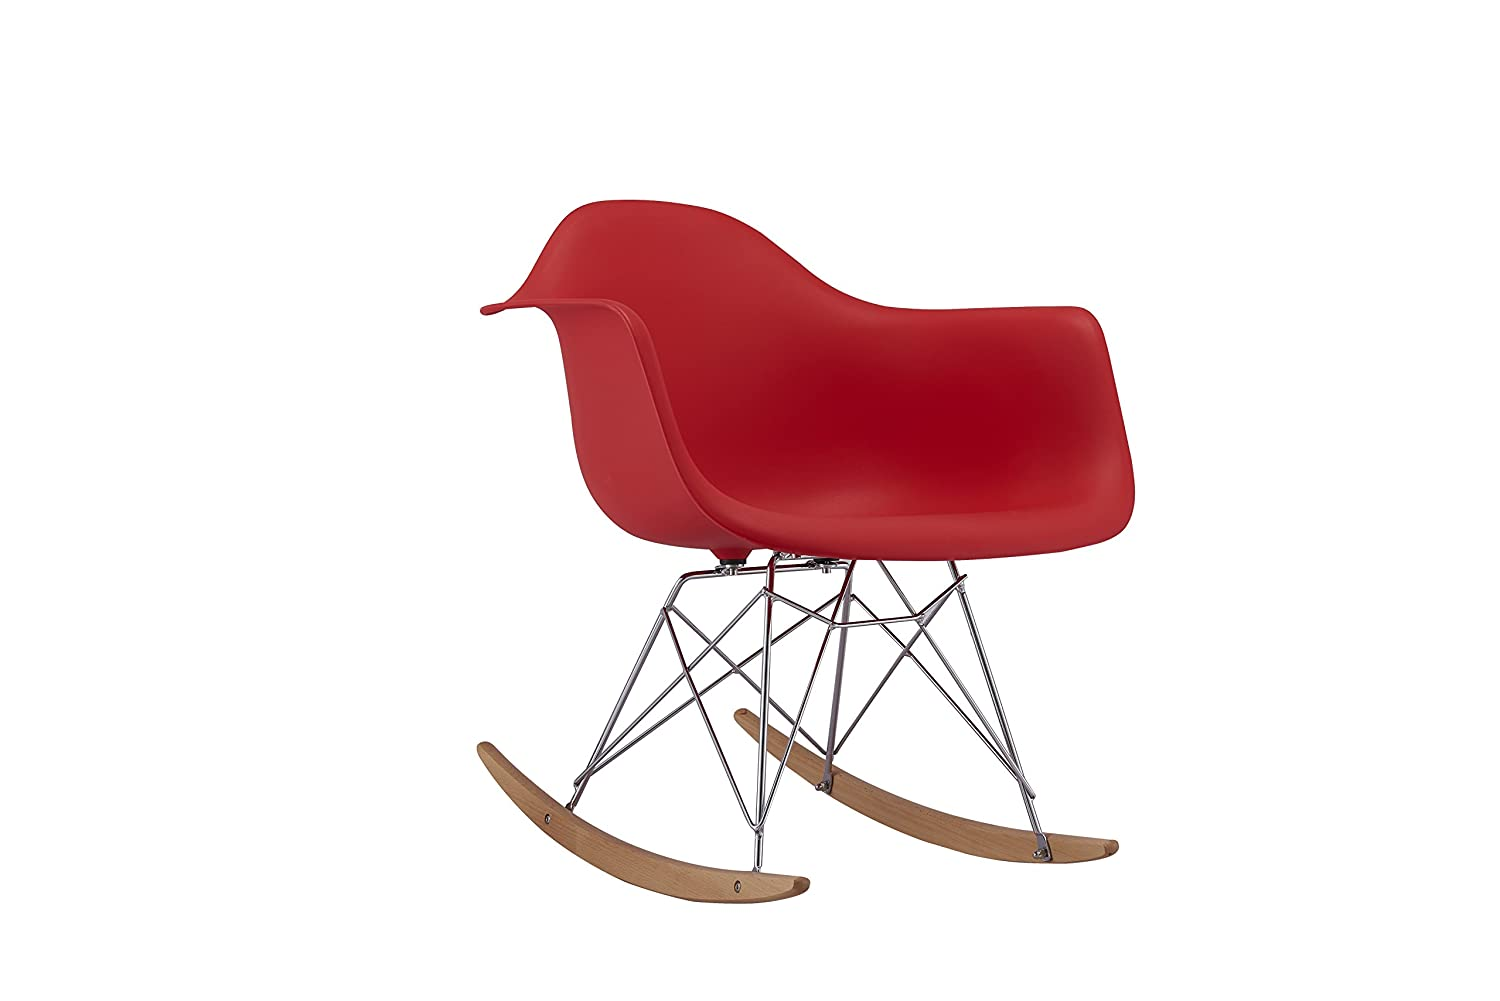 Modern Set of 2 EAMES Style Rocking Armchair Natural Wood Legs in Color White, Black and Red (Red) Homegoods Mania